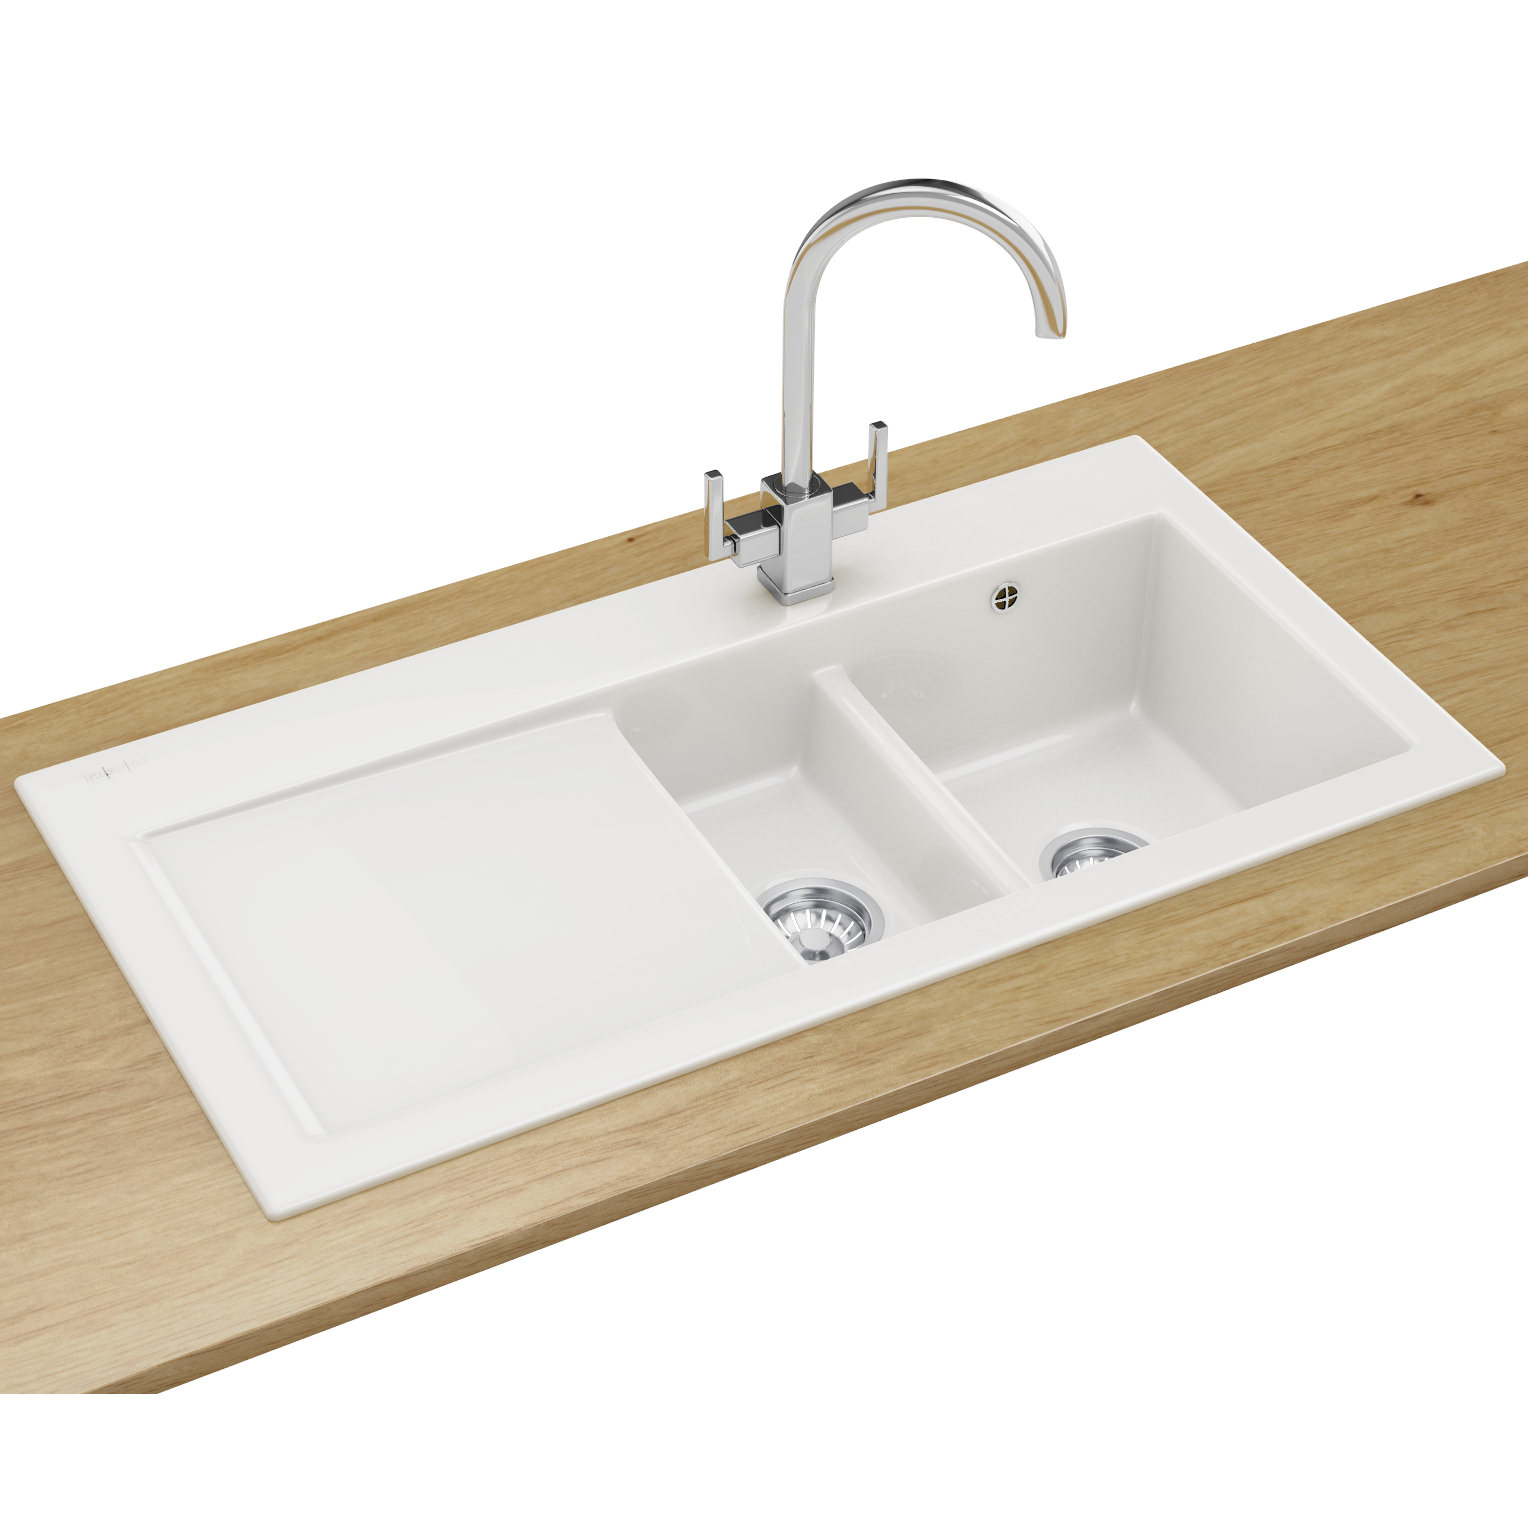 Franke Sinks And Taps : Franke Mythos Designer Pack MTK 651 Ceramic White Sink And Tap 124 ...